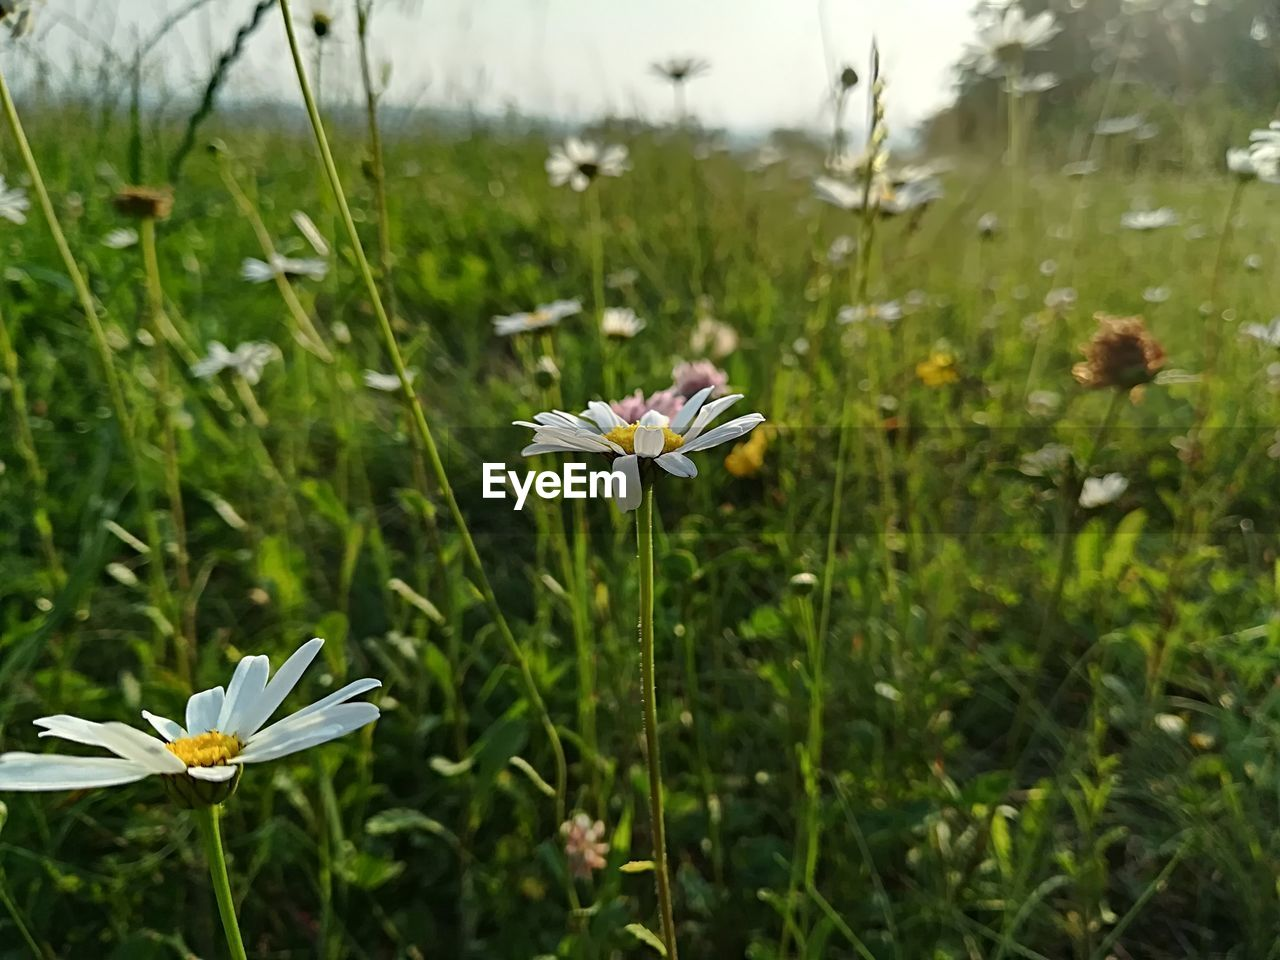 plant, flowering plant, flower, growth, beauty in nature, vulnerability, fragility, freshness, petal, flower head, focus on foreground, green color, nature, inflorescence, land, field, white color, close-up, day, no people, pollen, outdoors